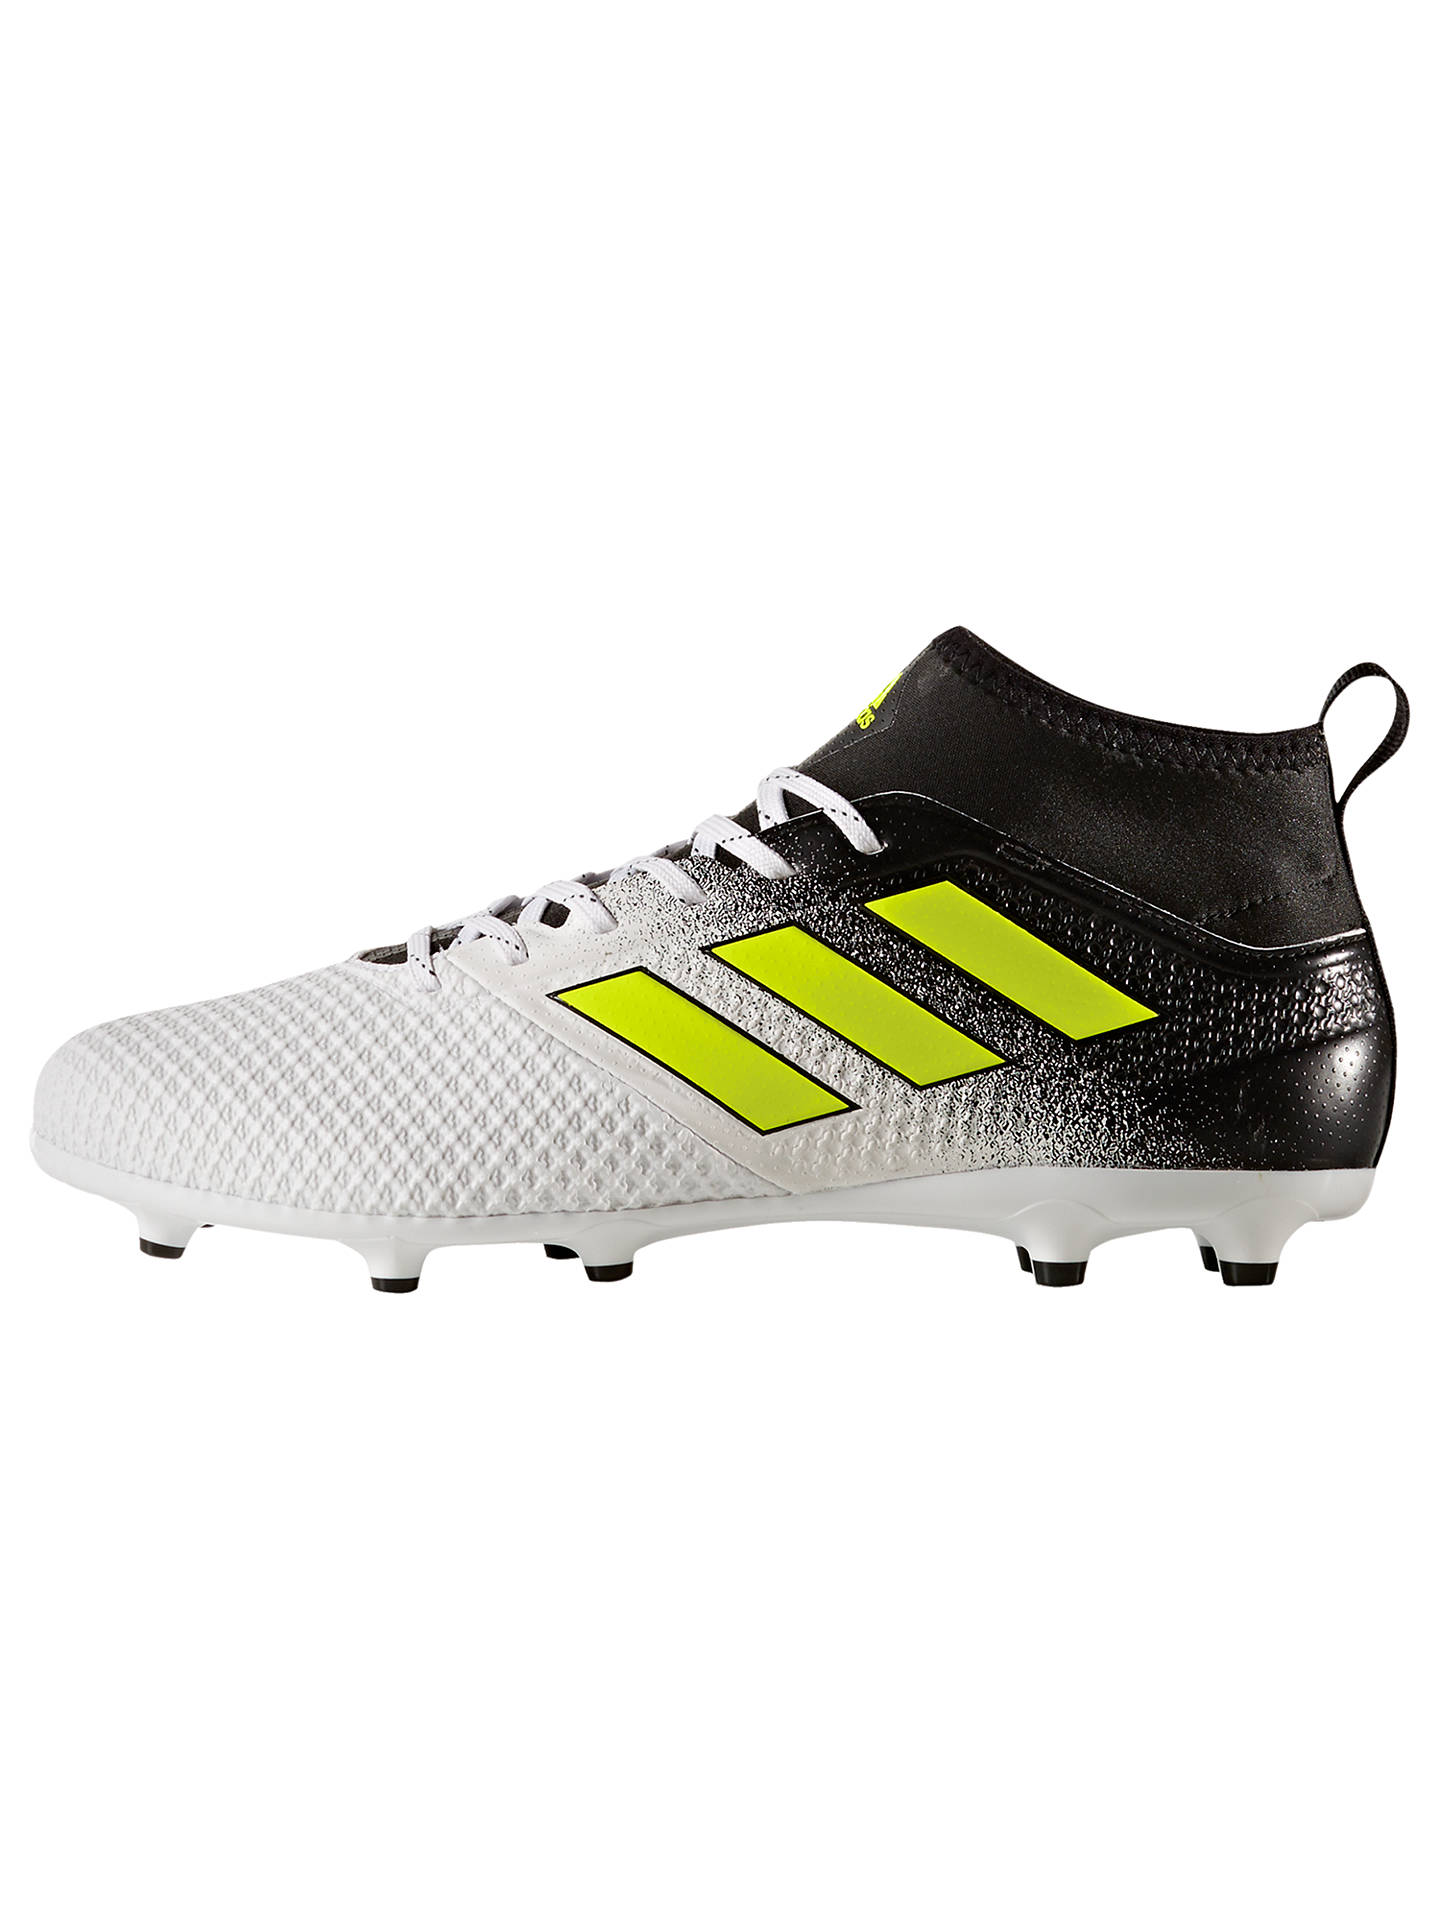 adidas Ace 17.3 Primemesh AG Men's Firm Ground Football